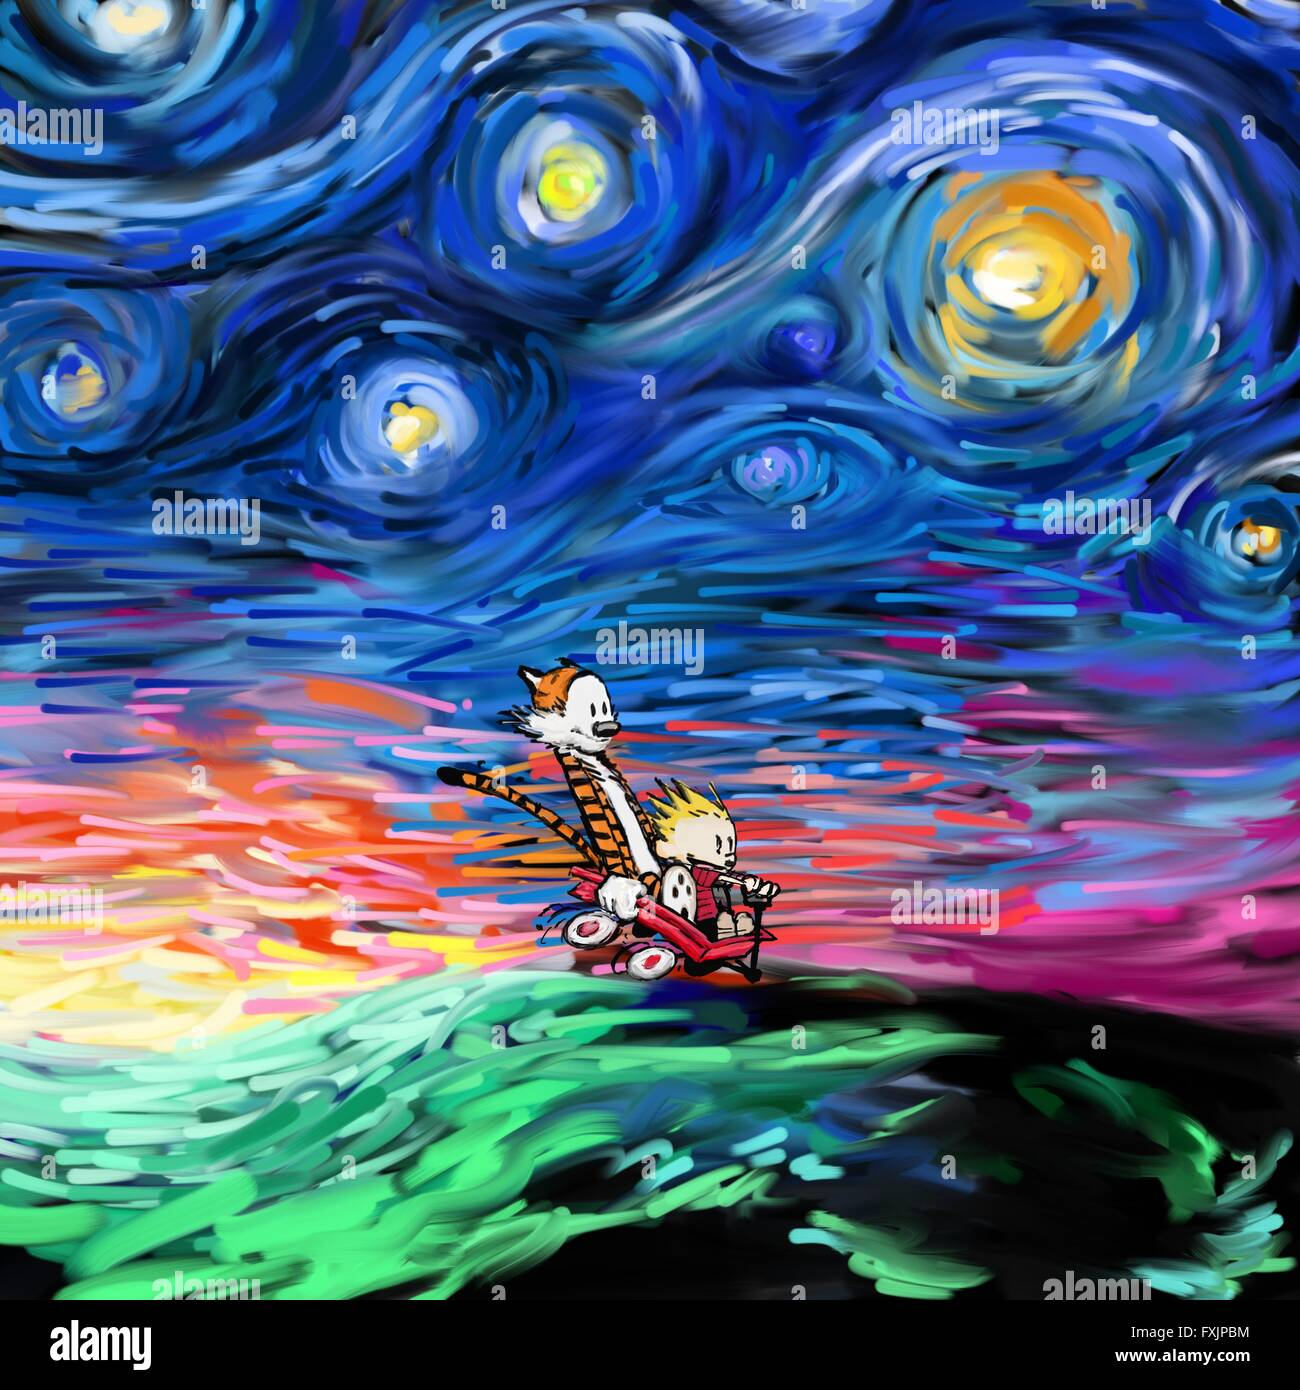 Calvin And Hobbes On Vincent Van Gogh S Starry Night Painting Effect Stock Photo 102445608 Alamy